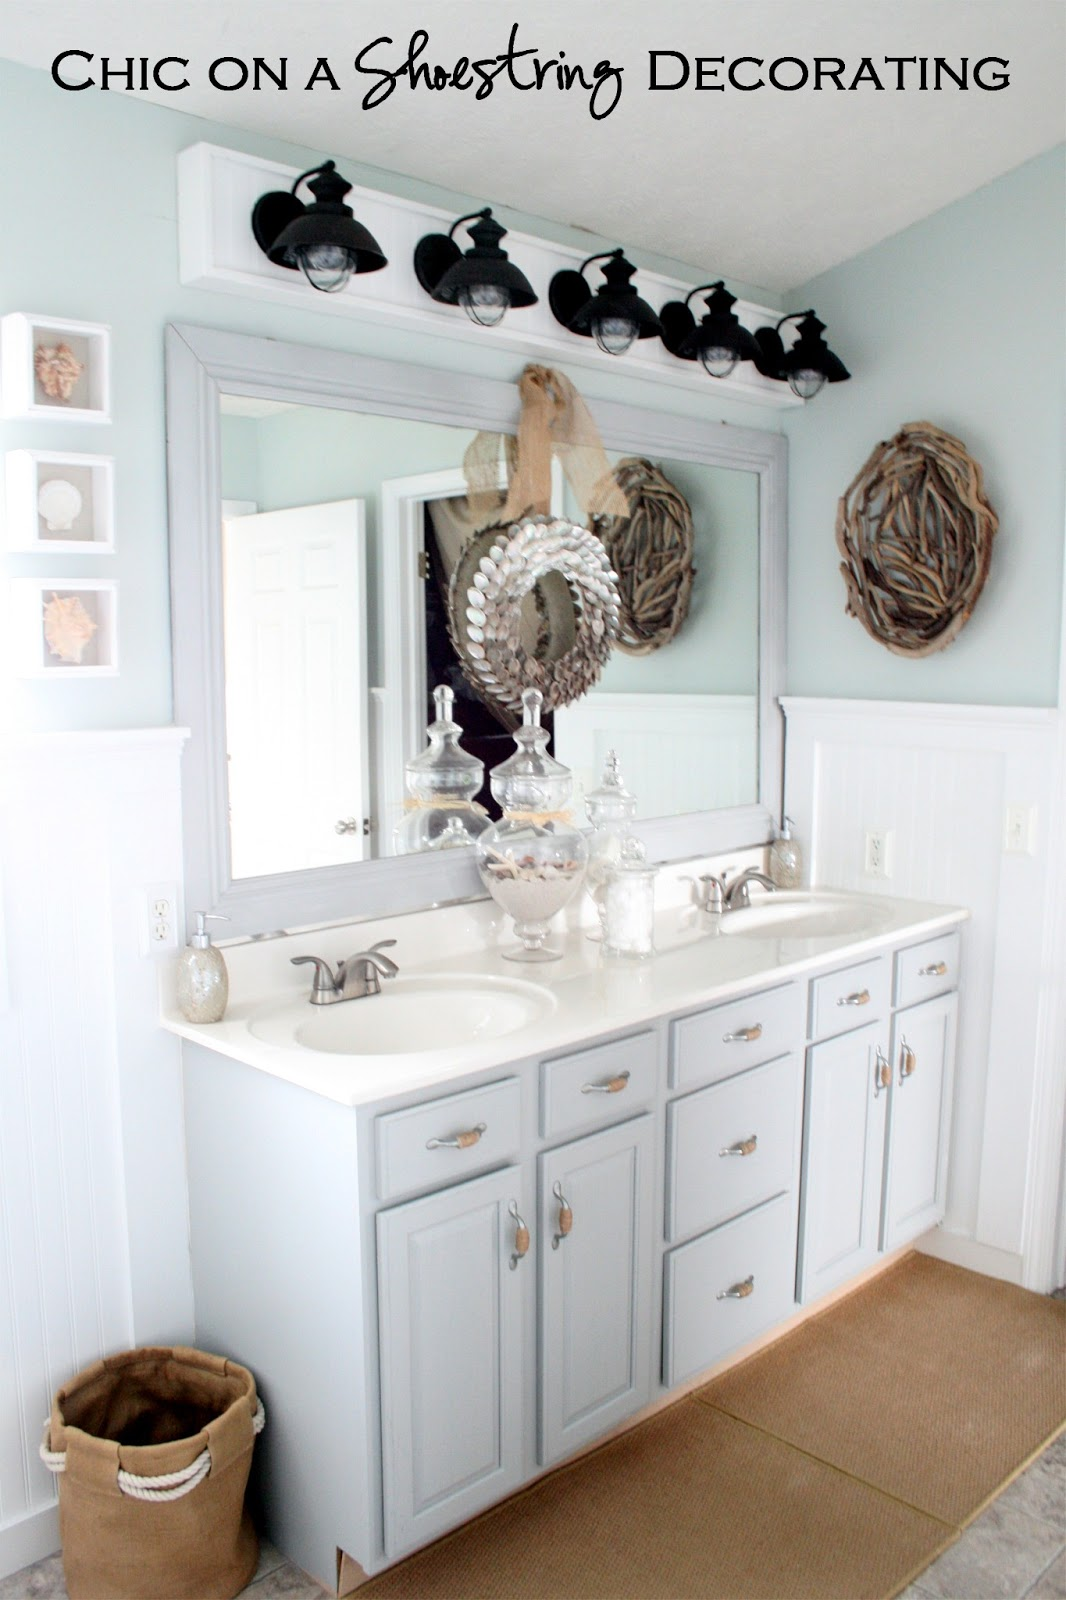 Chic on a Shoestring Decorating: How to Build a Bathroom Light Fixture